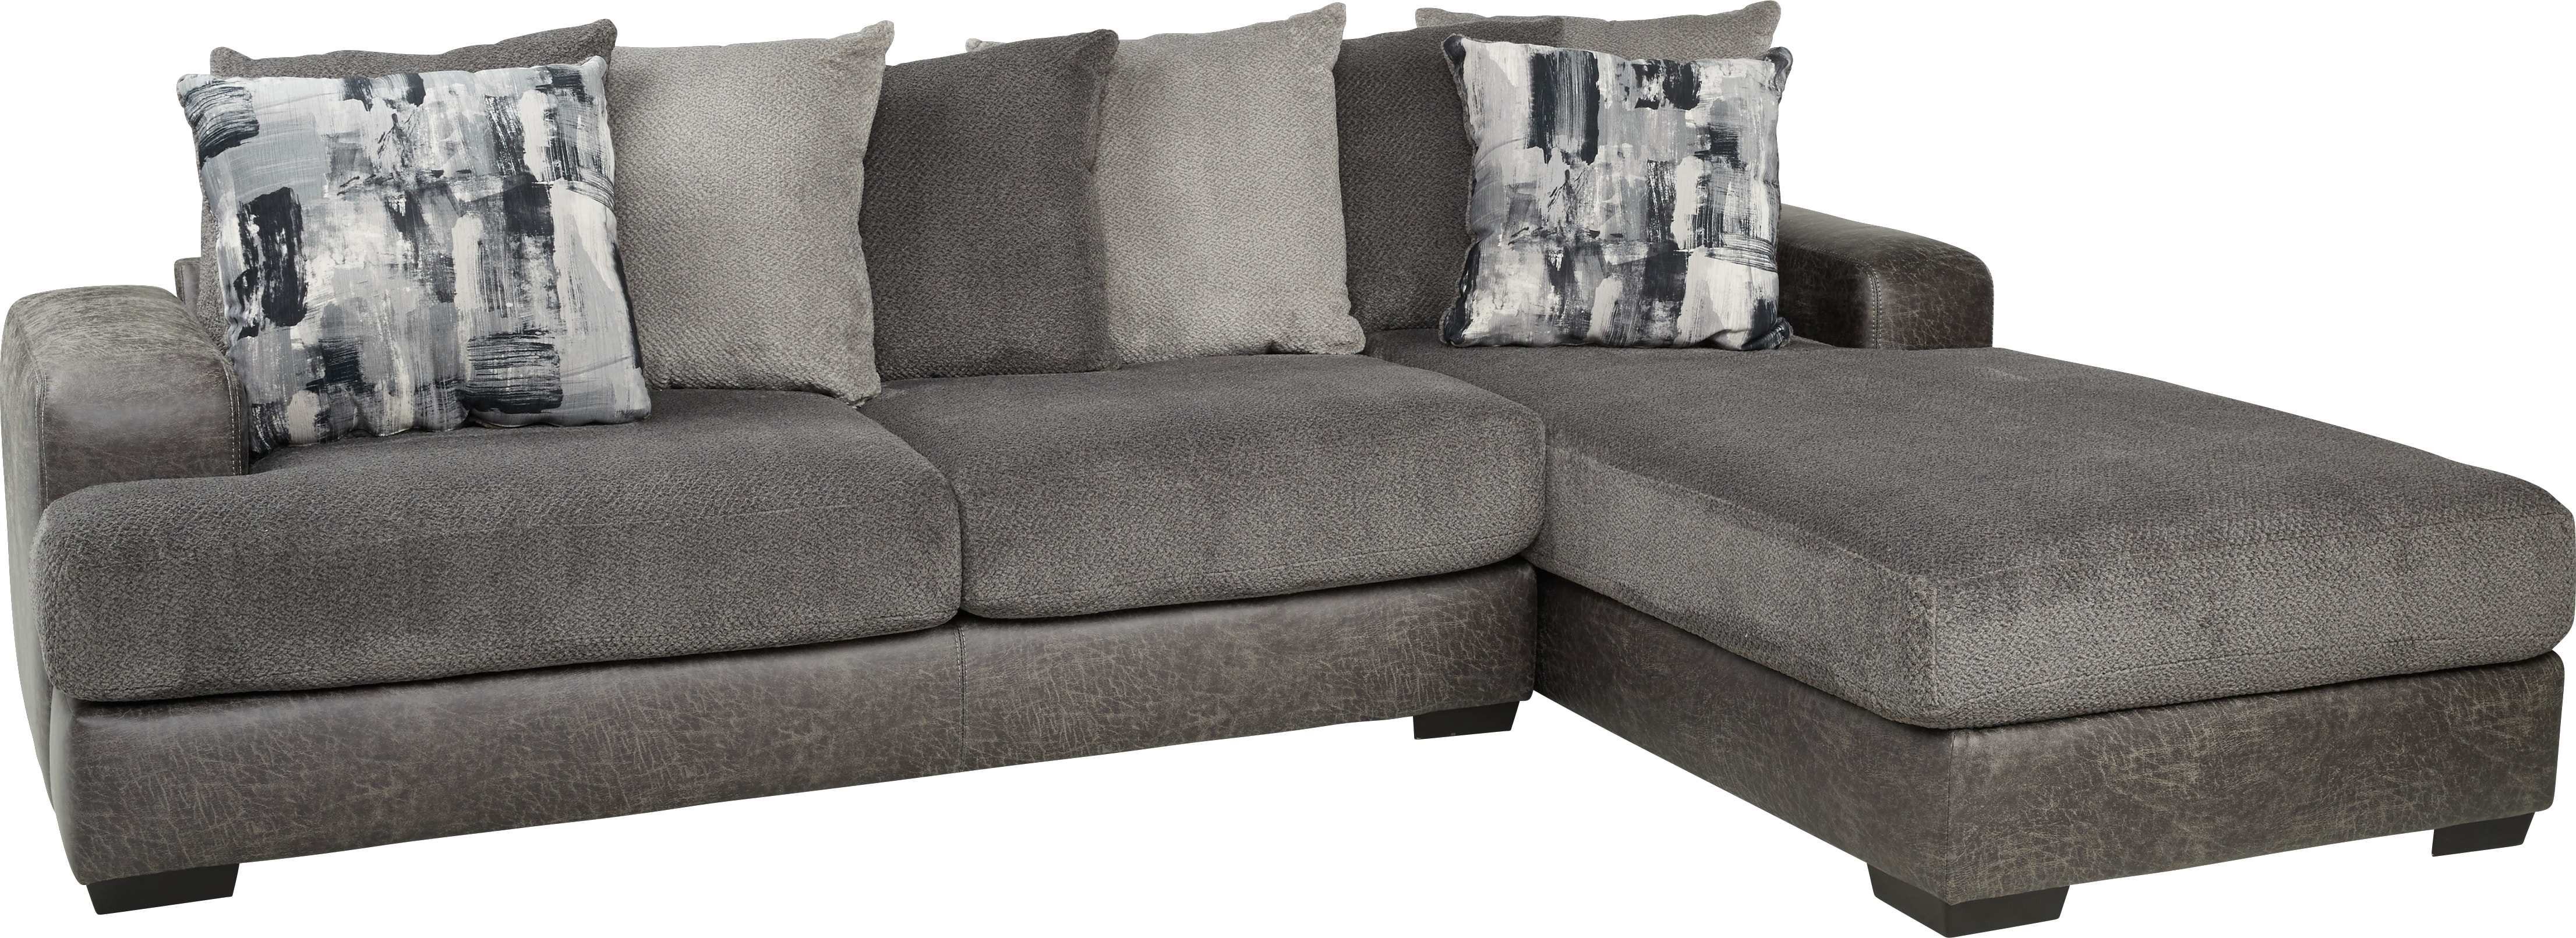 Foster Square Graphite 2 Pc Sectional – Living Room Sets (Gray) Pertaining To Mcdade Graphite Sofa Chairs (View 5 of 25)